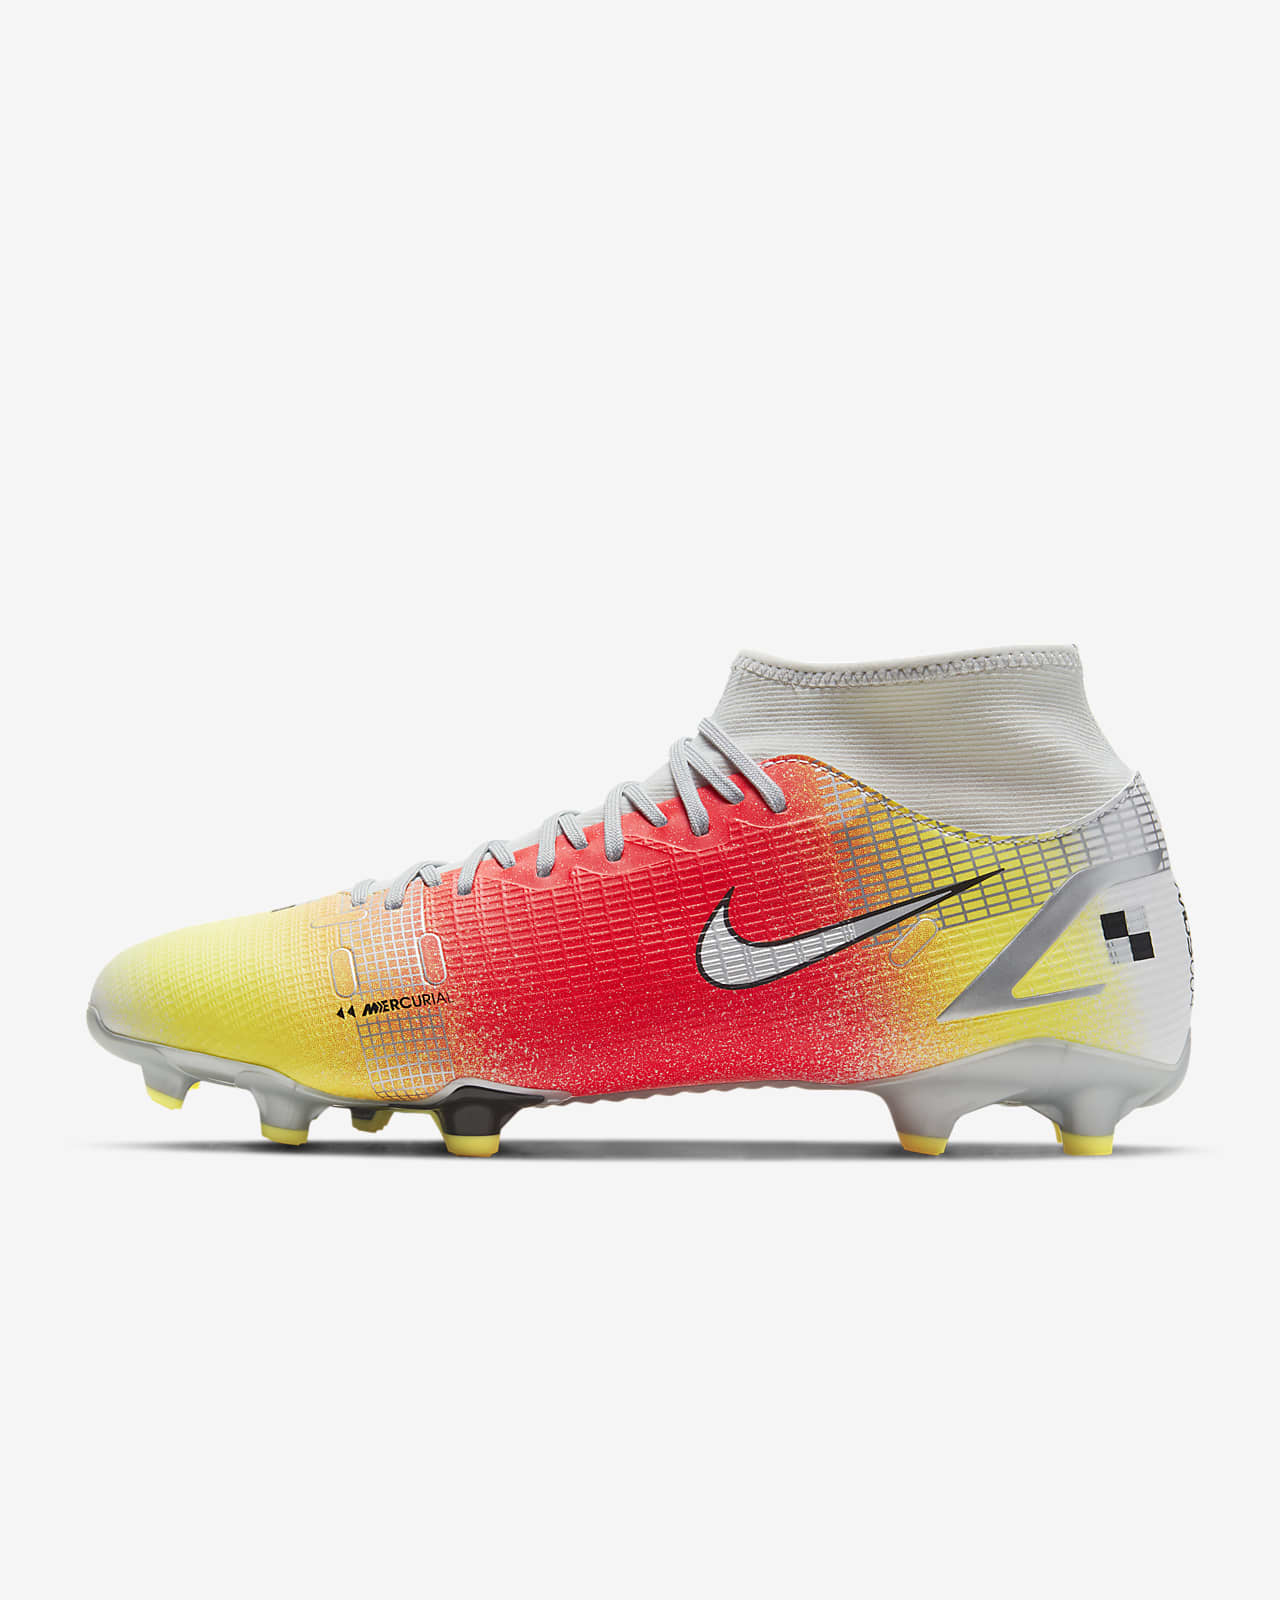 Nike Mercurial Dream Speed Superfly 8 Academy MG Multi-Ground Football Boot